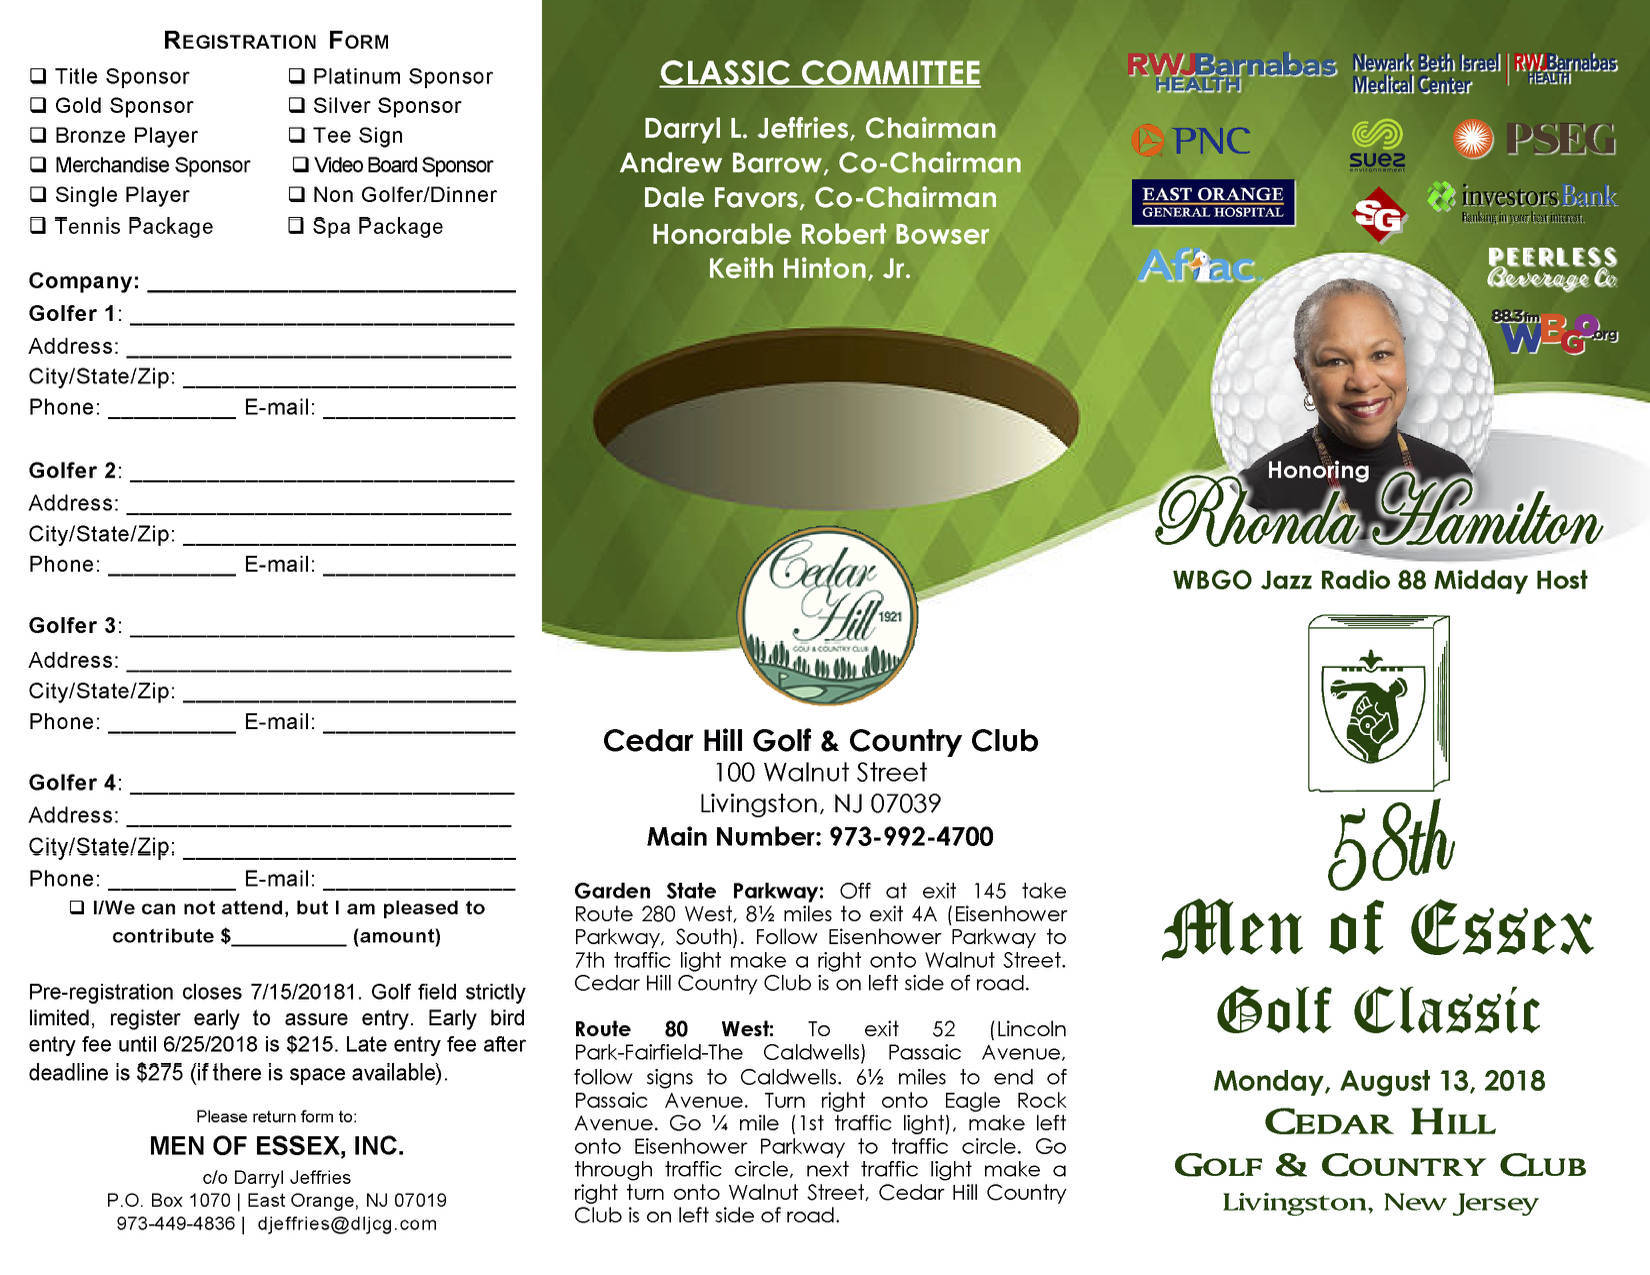 "Corporate, Civic Leaders and Celebrities Set to ""Swing"" Into Action at 58th Annual Men of Essex Charity Golf Classic"